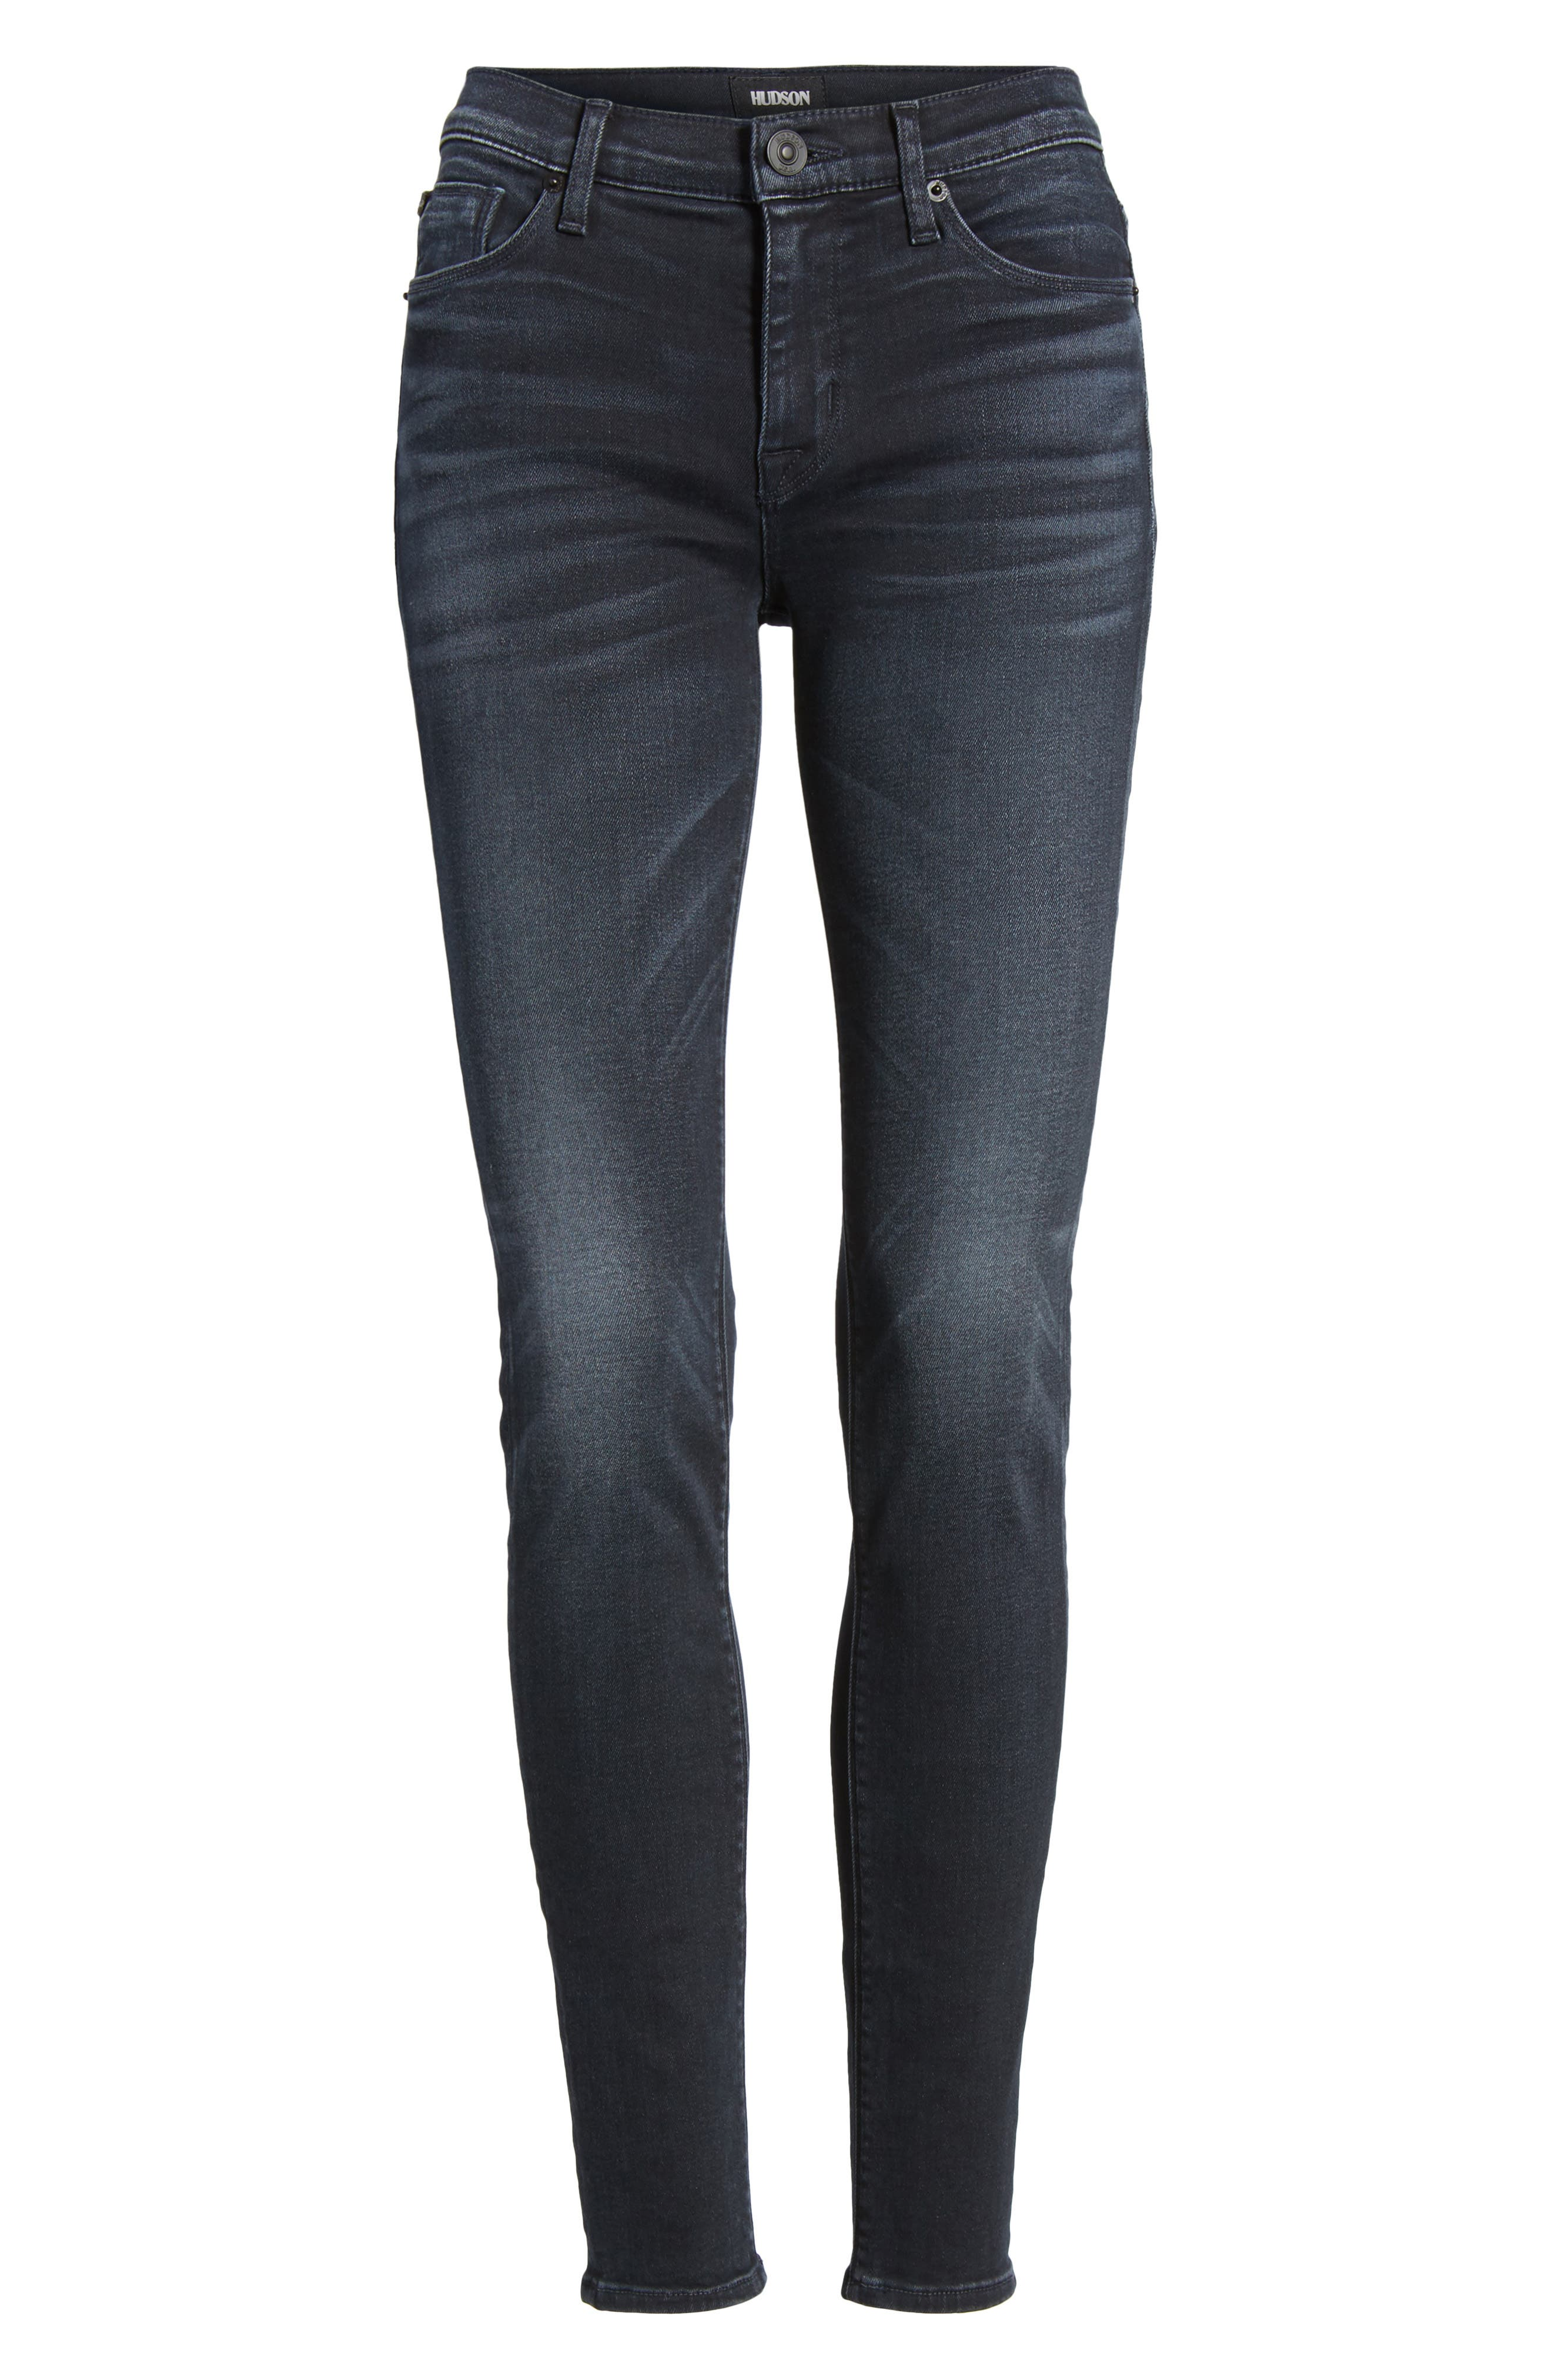 Nico Super Skinny Jeans,                             Alternate thumbnail 6, color,                             Soft Shock